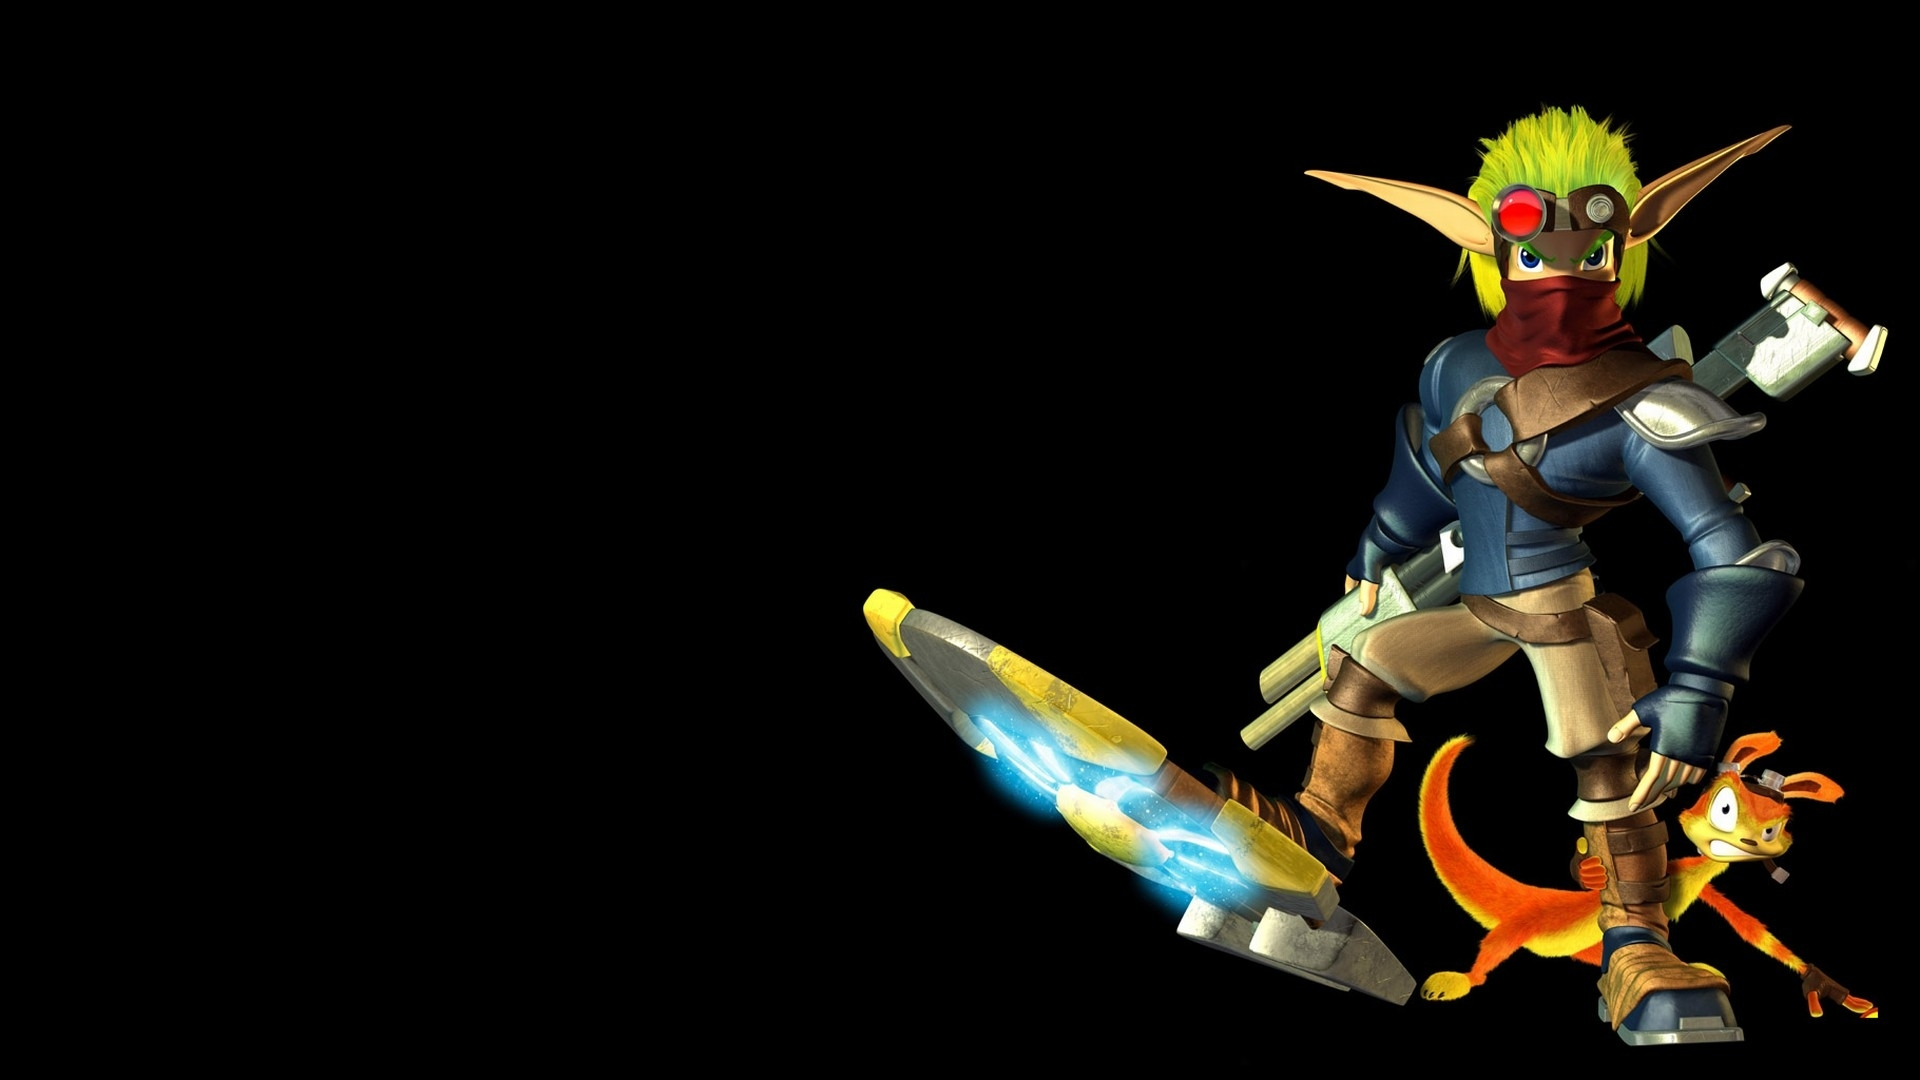 jak and daxter wallpapers hd - media file | pixelstalk